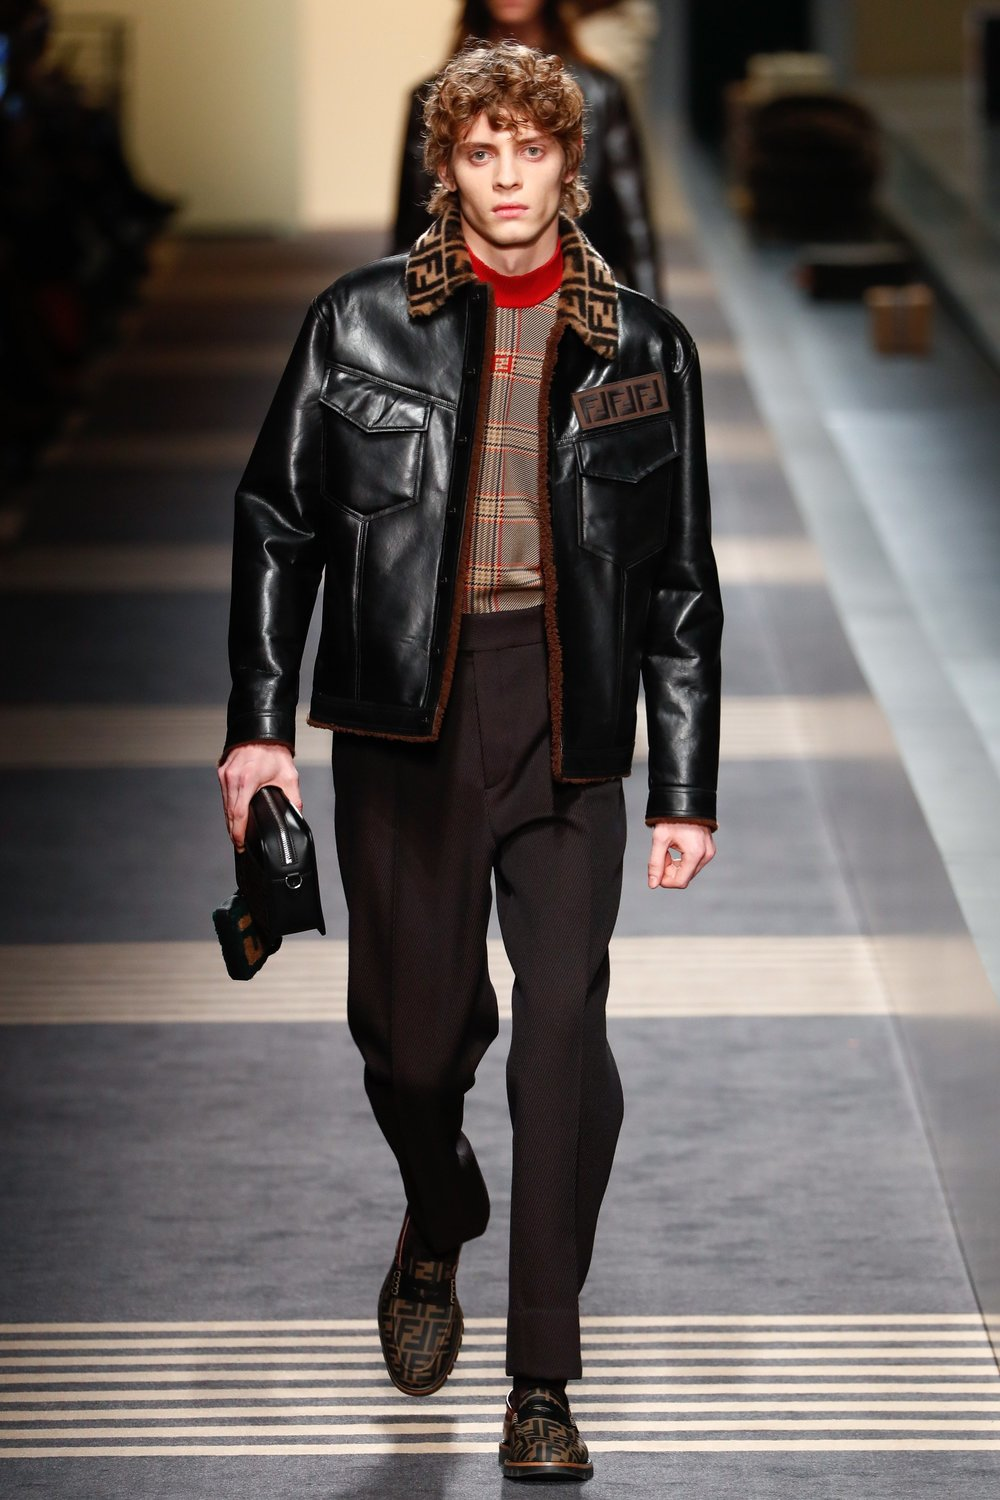 https://www.vogue.com/fashion-shows/fall-2018-menswear/fendi/slideshow/collection